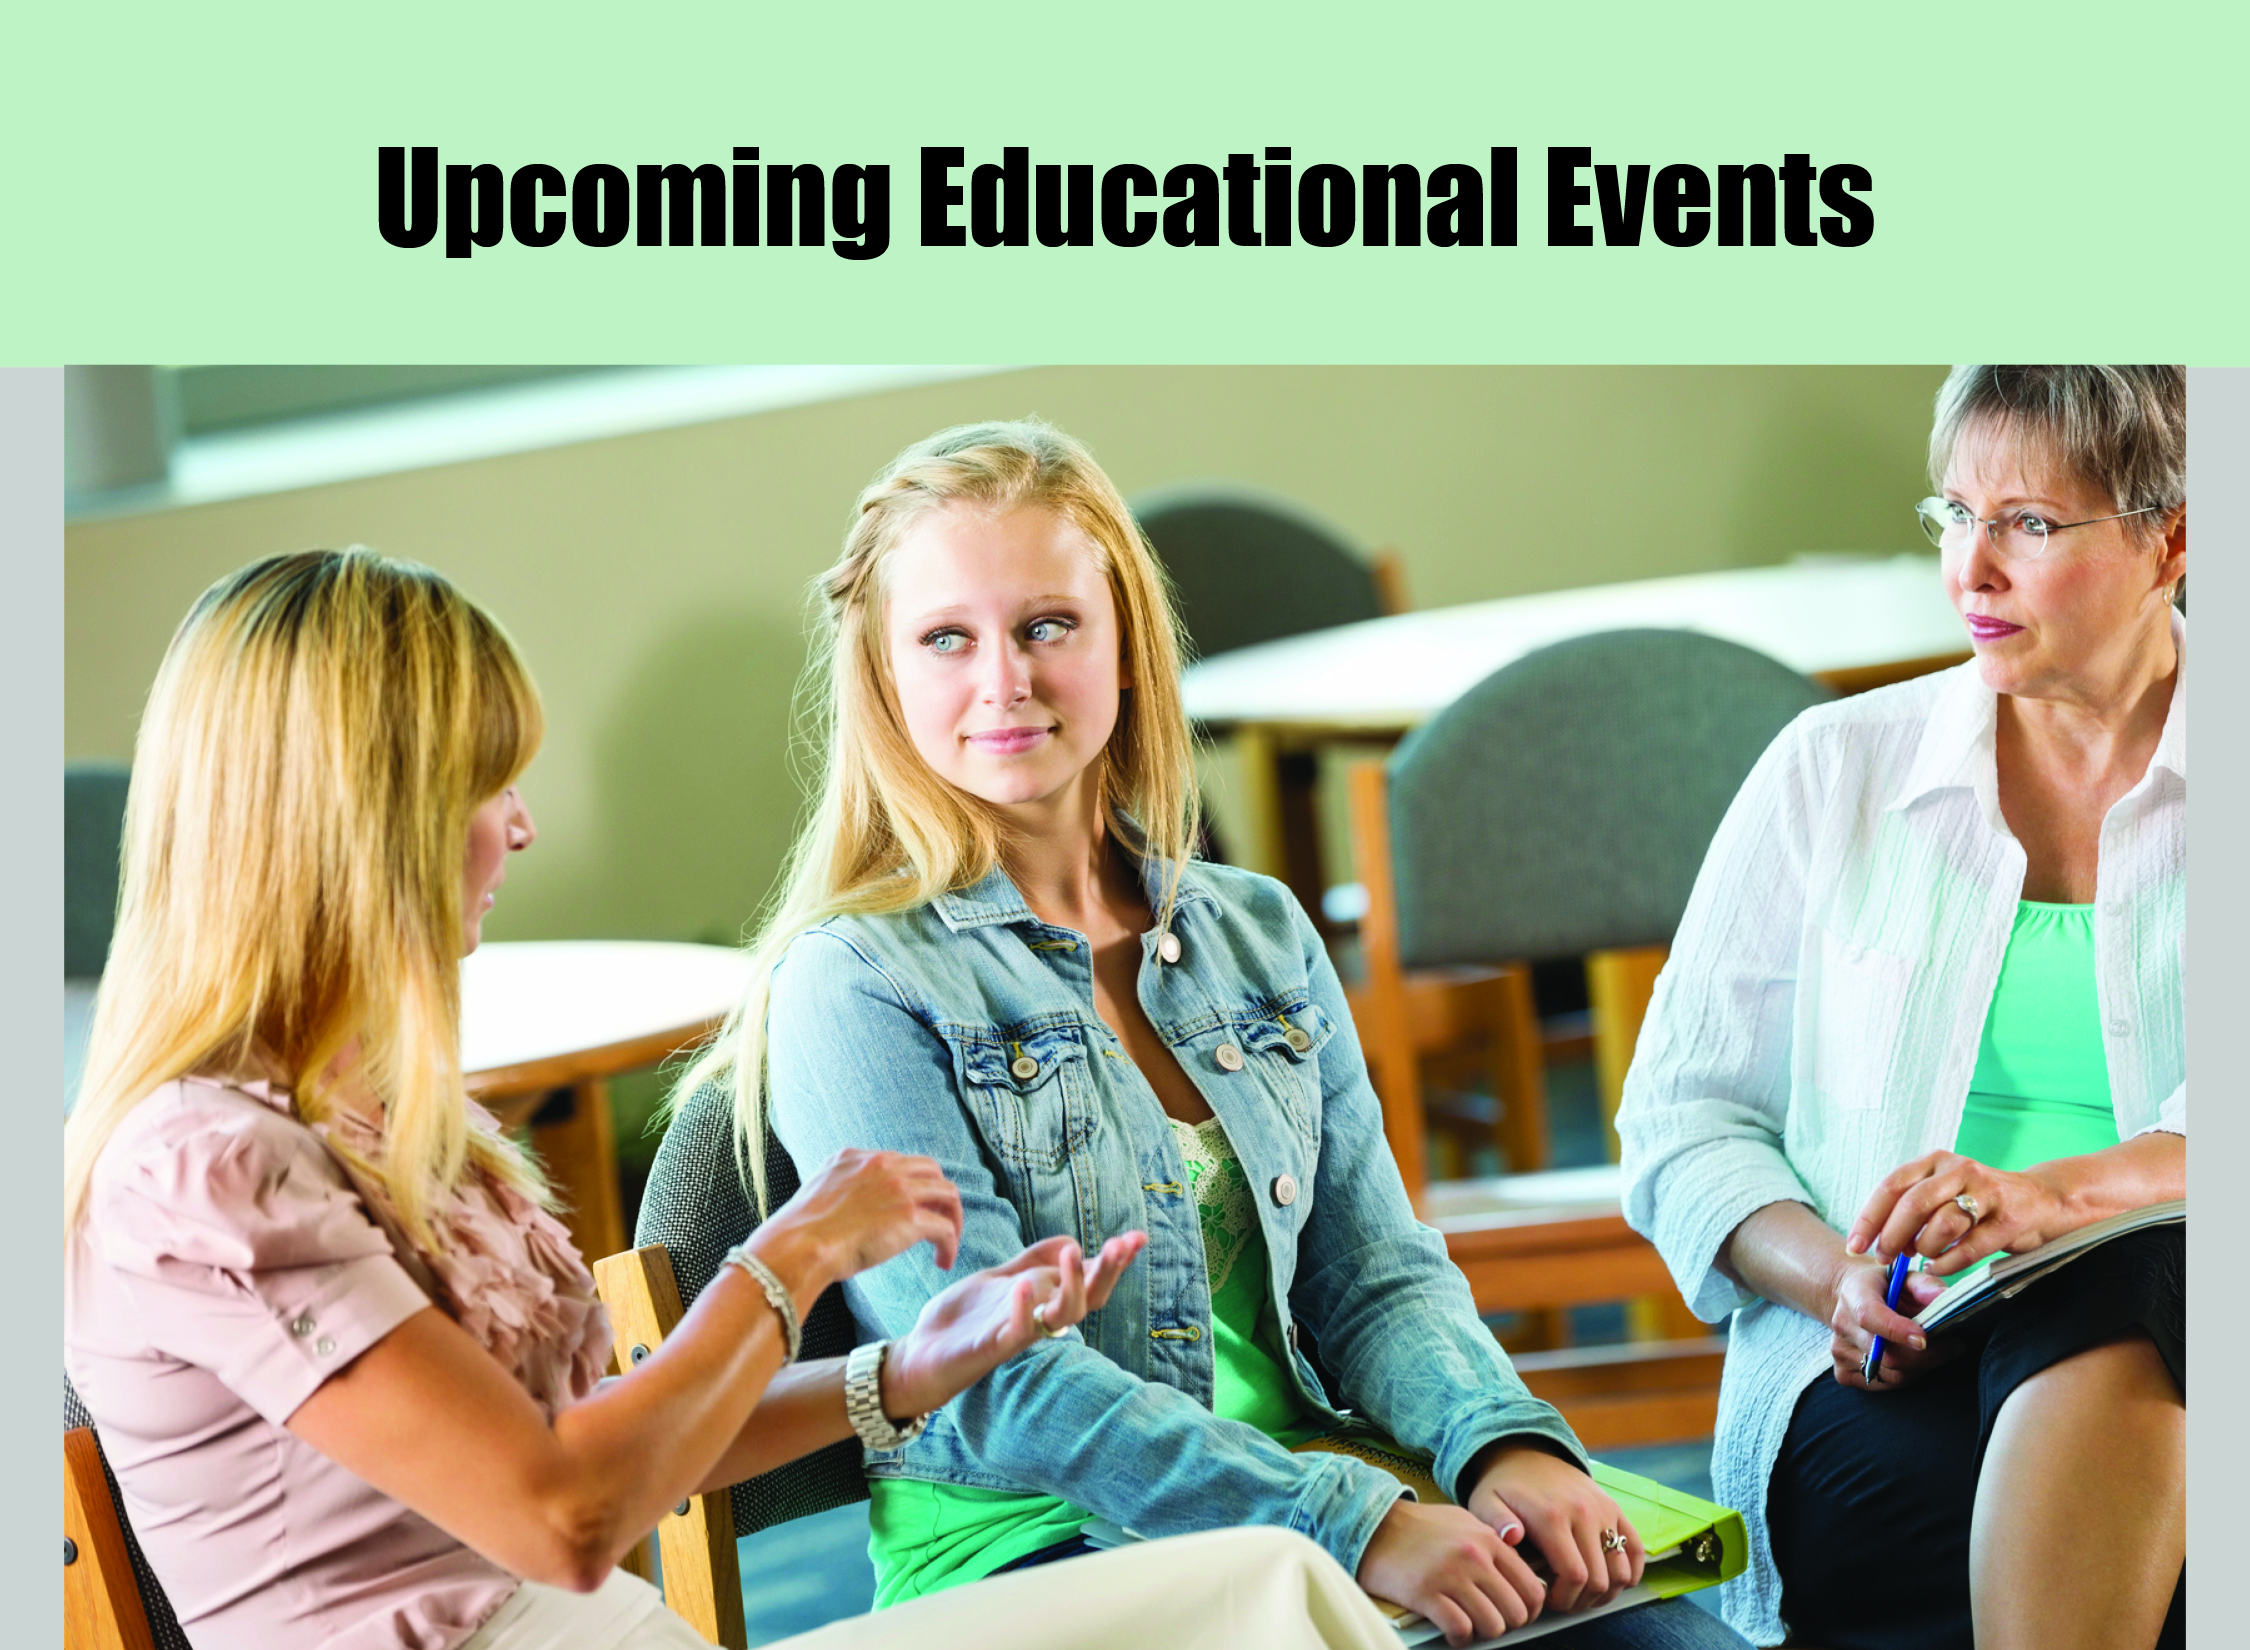 Upcoming_Educational_Events.jpg